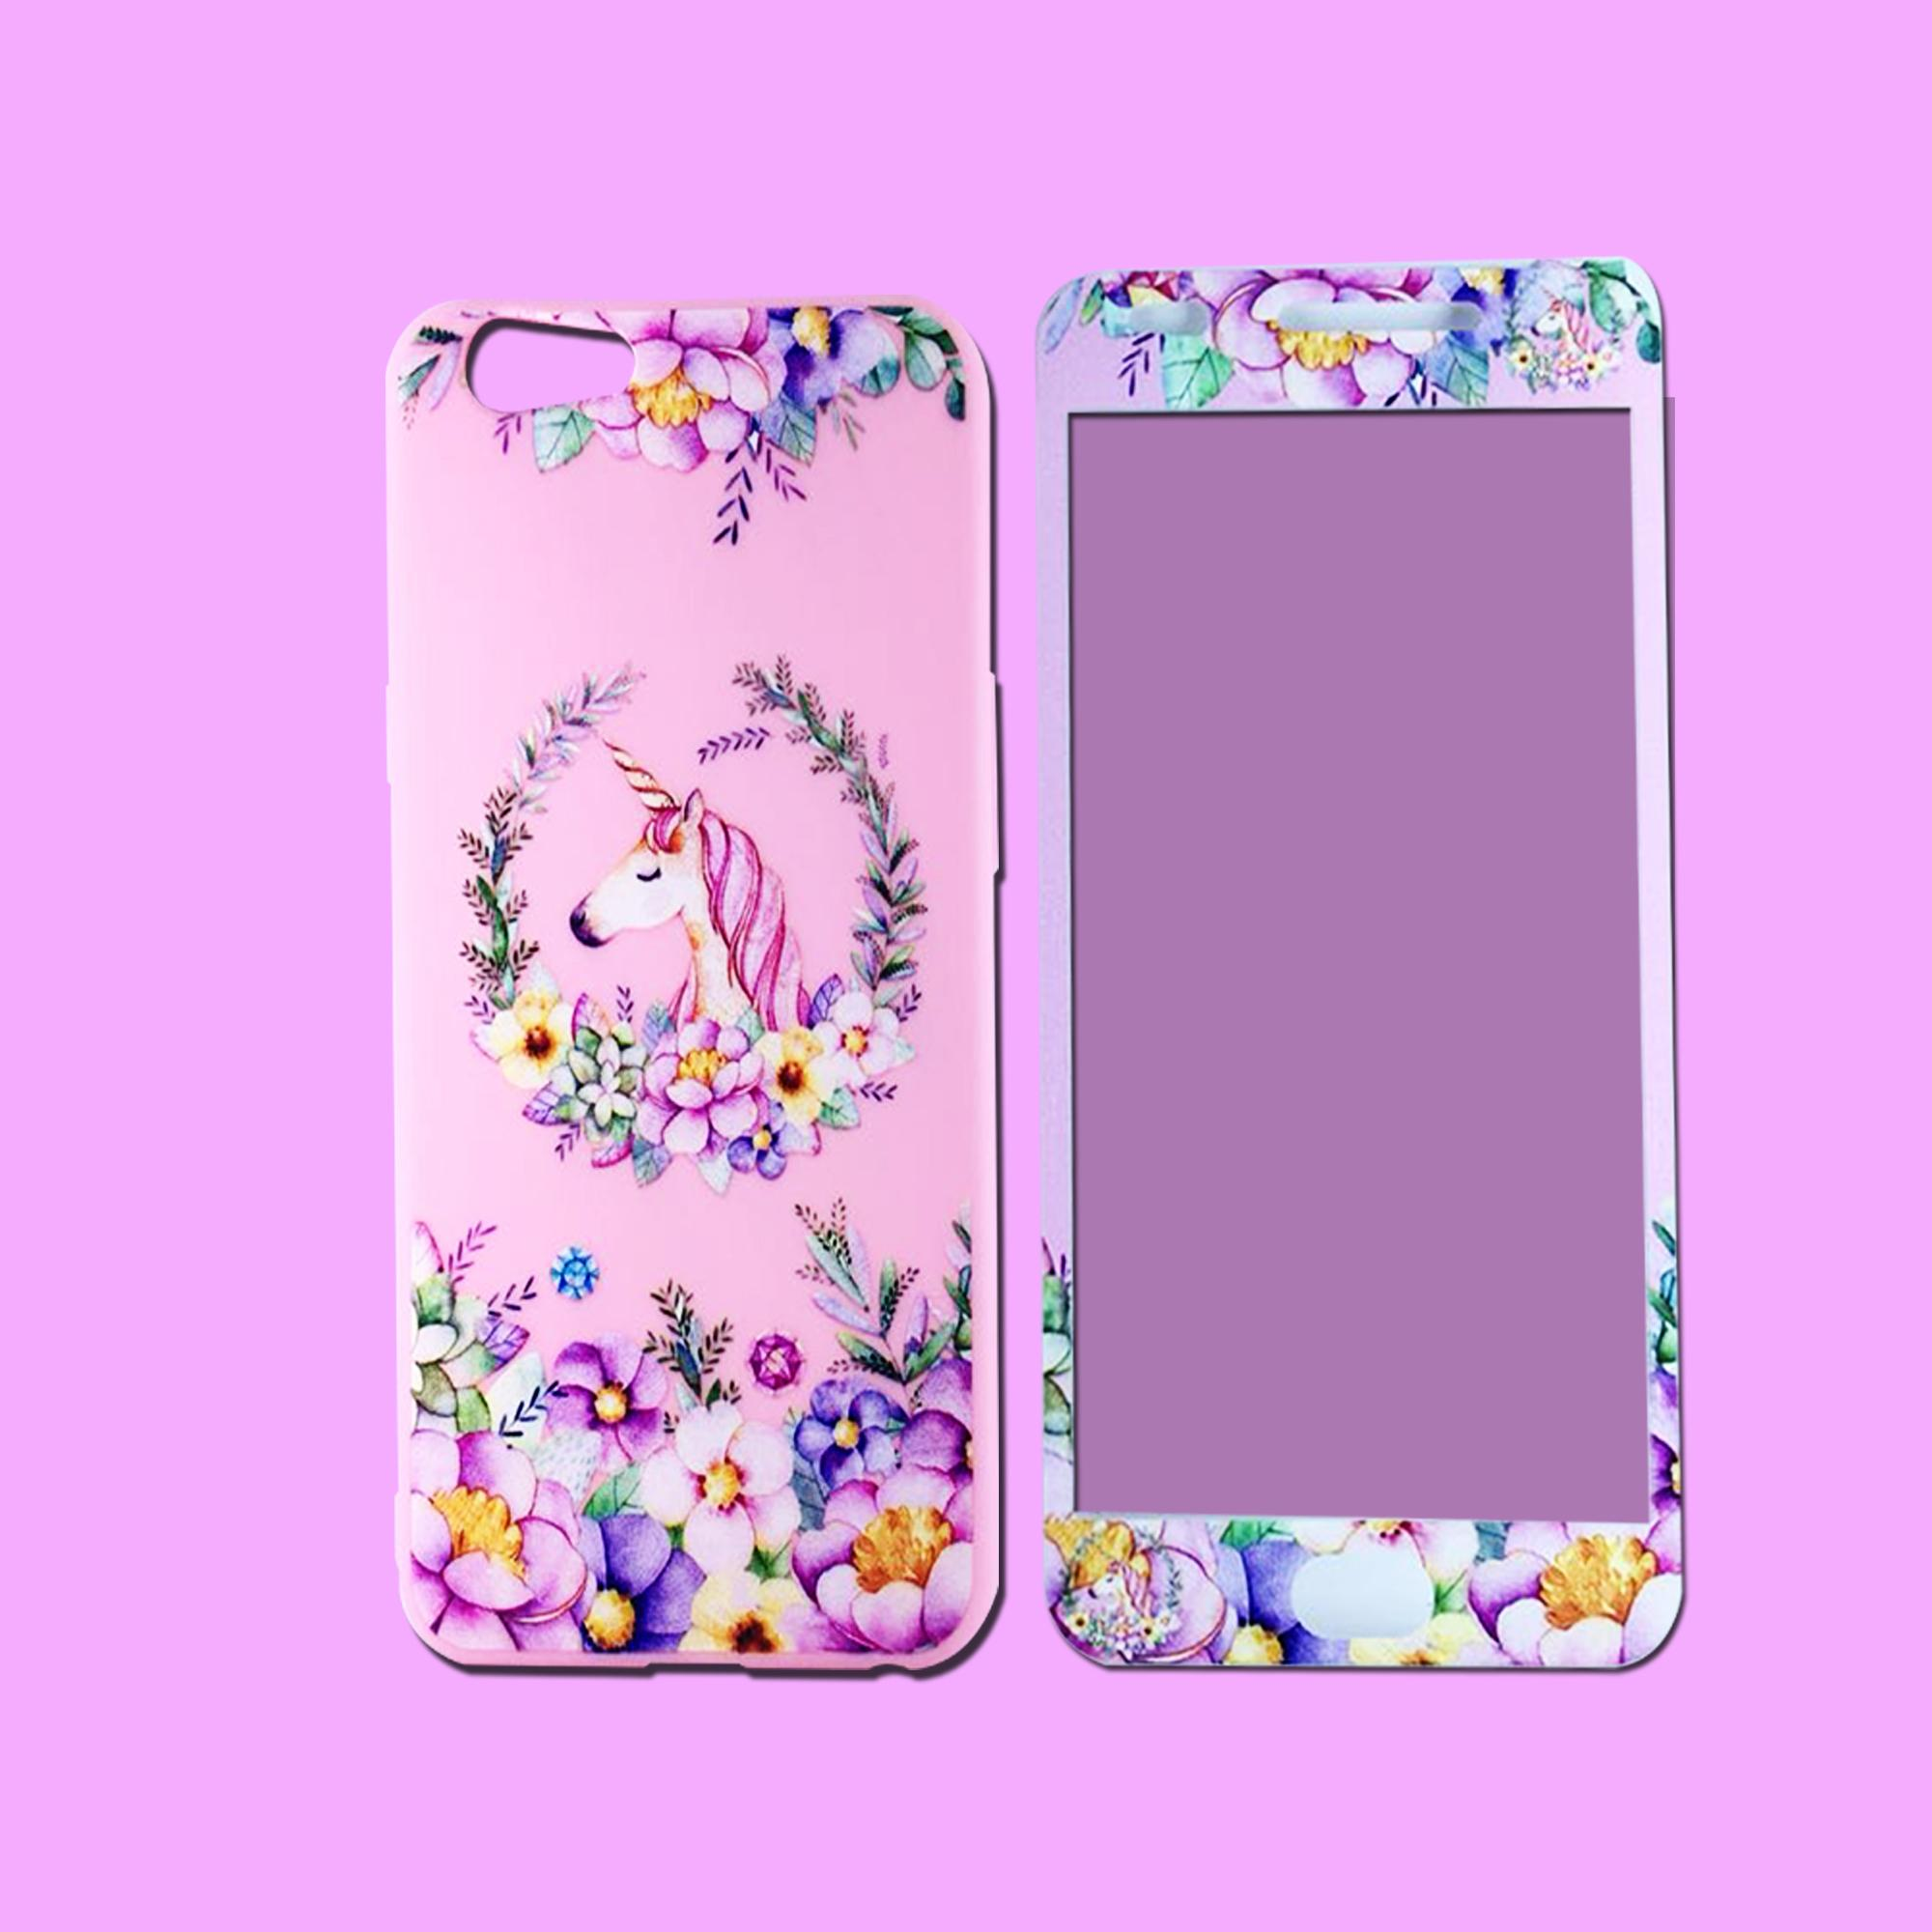 BCS Softcase Little Pony Plus Tempered Phone Case New Xiaomi Redmi 4A